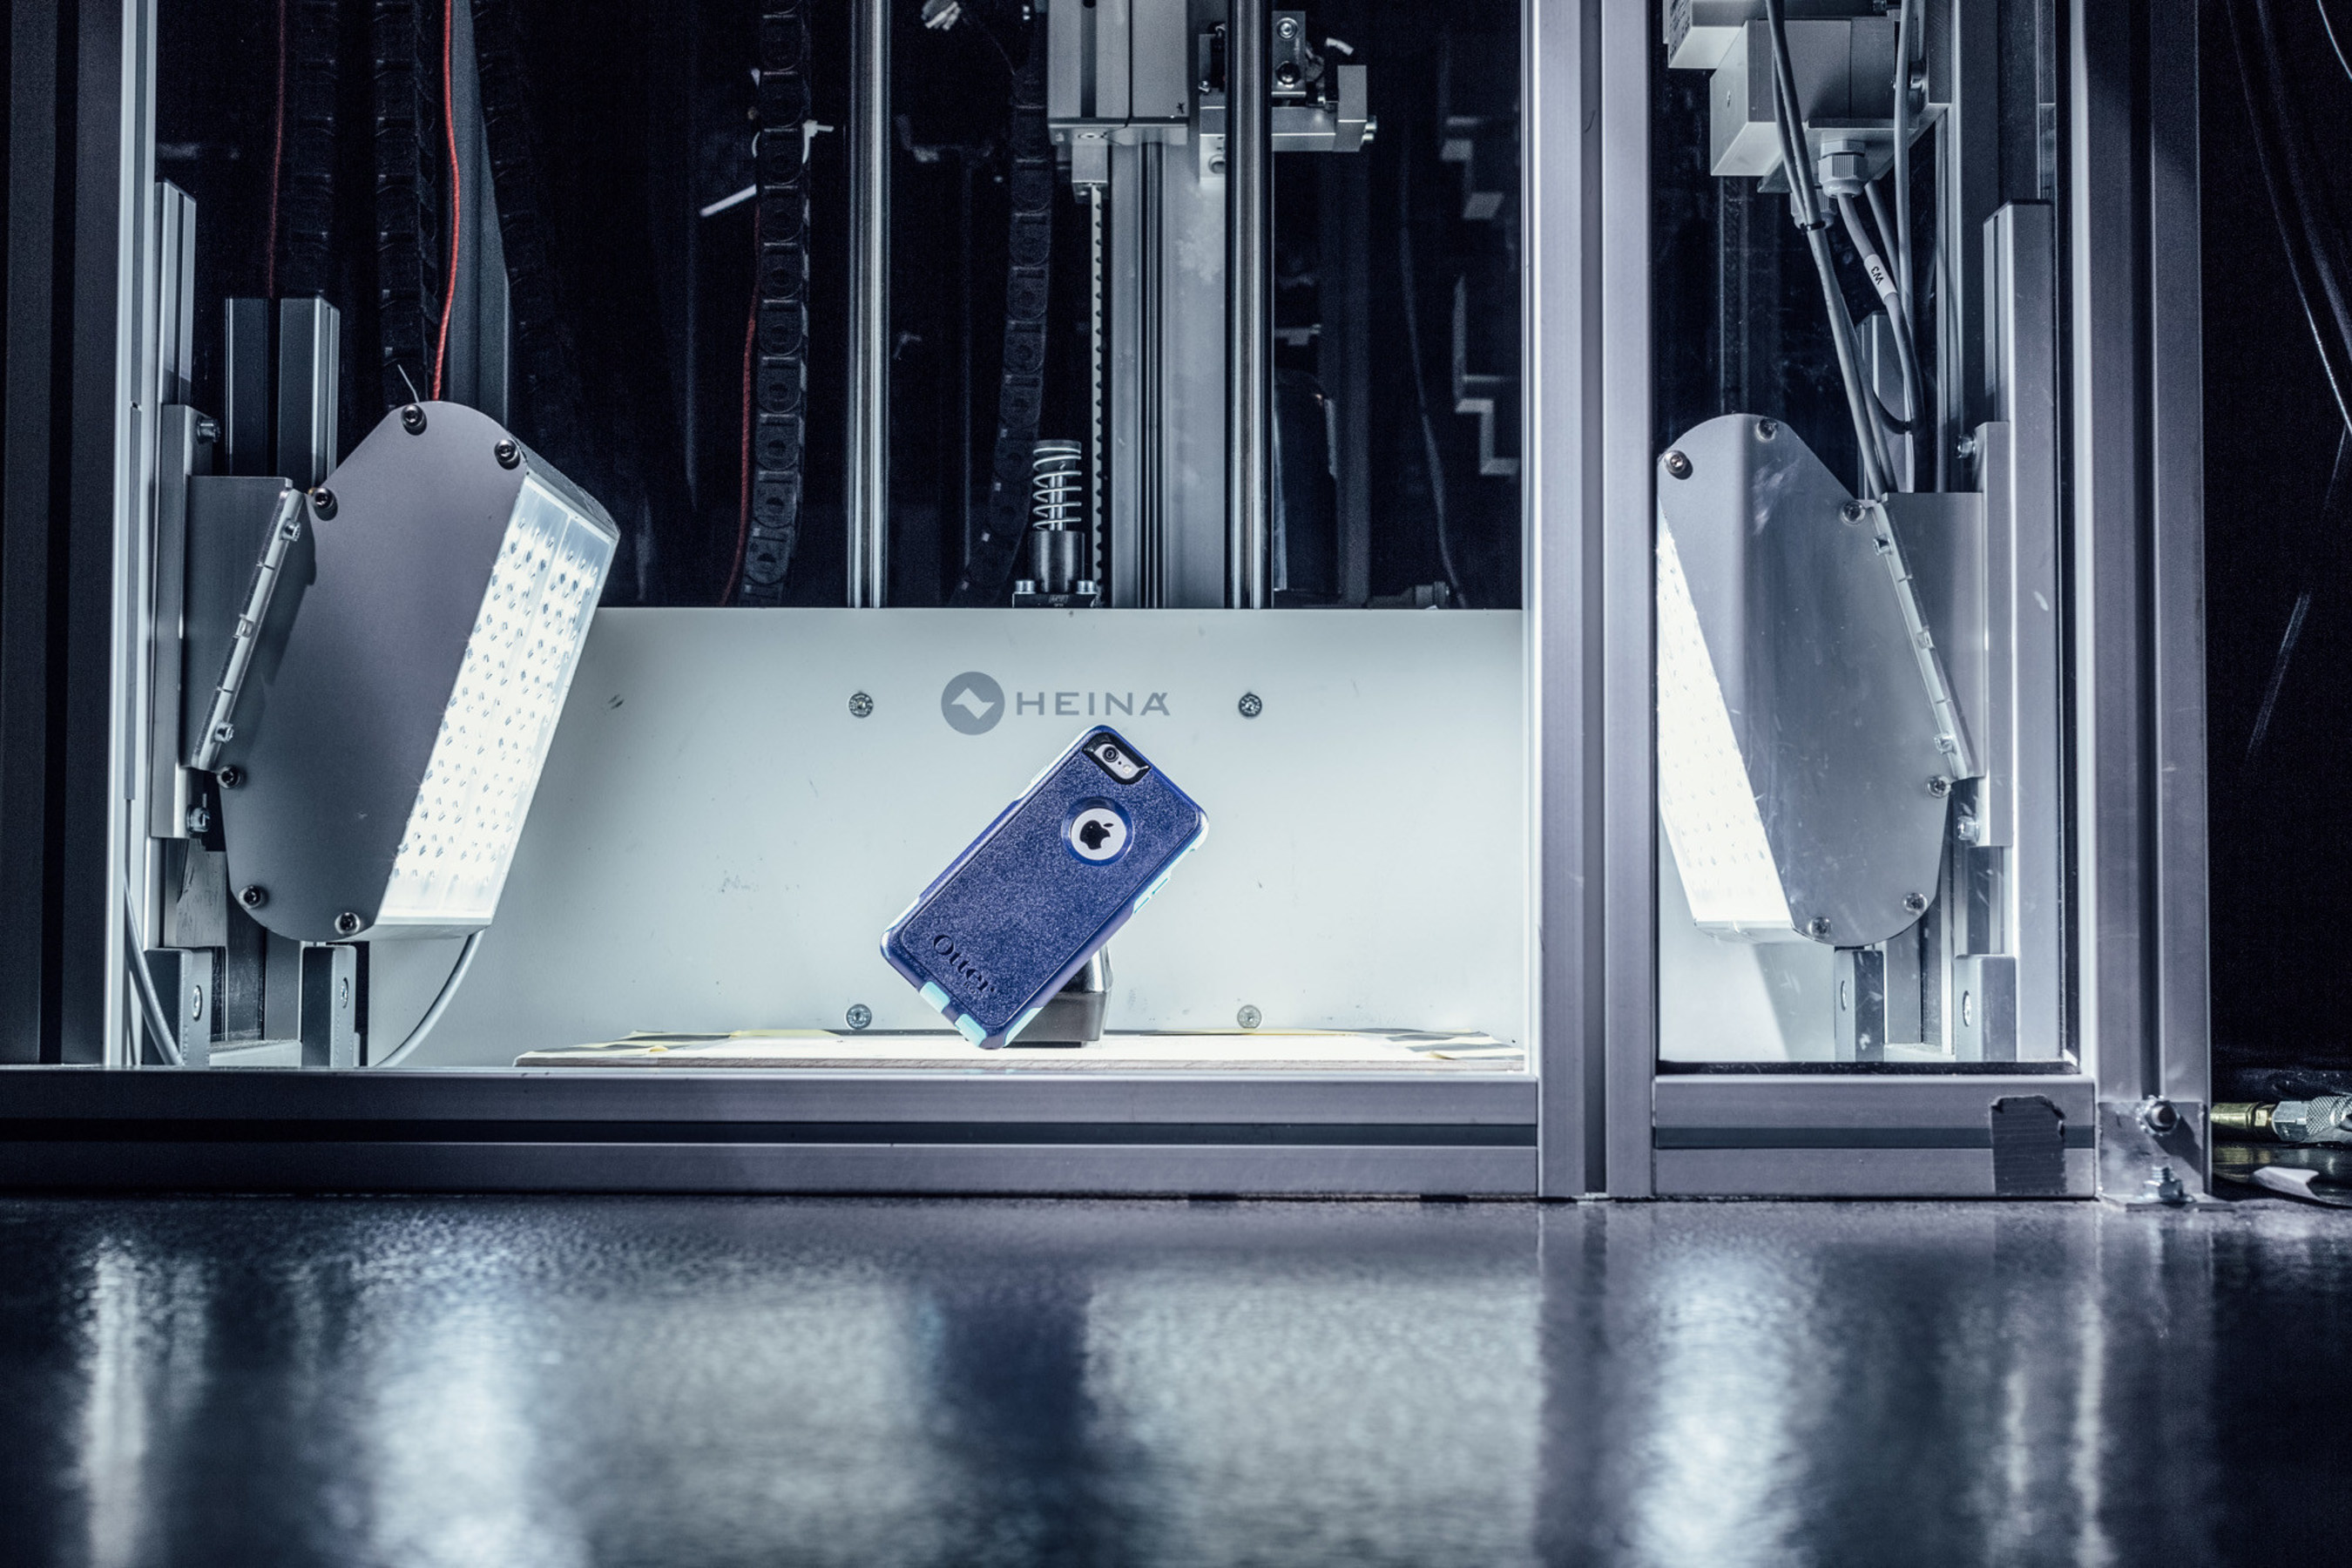 OtterBox Certified Drop+ Protection: OtterBox Unveils What Makes It The No. 1-Most Trusted Case Brand